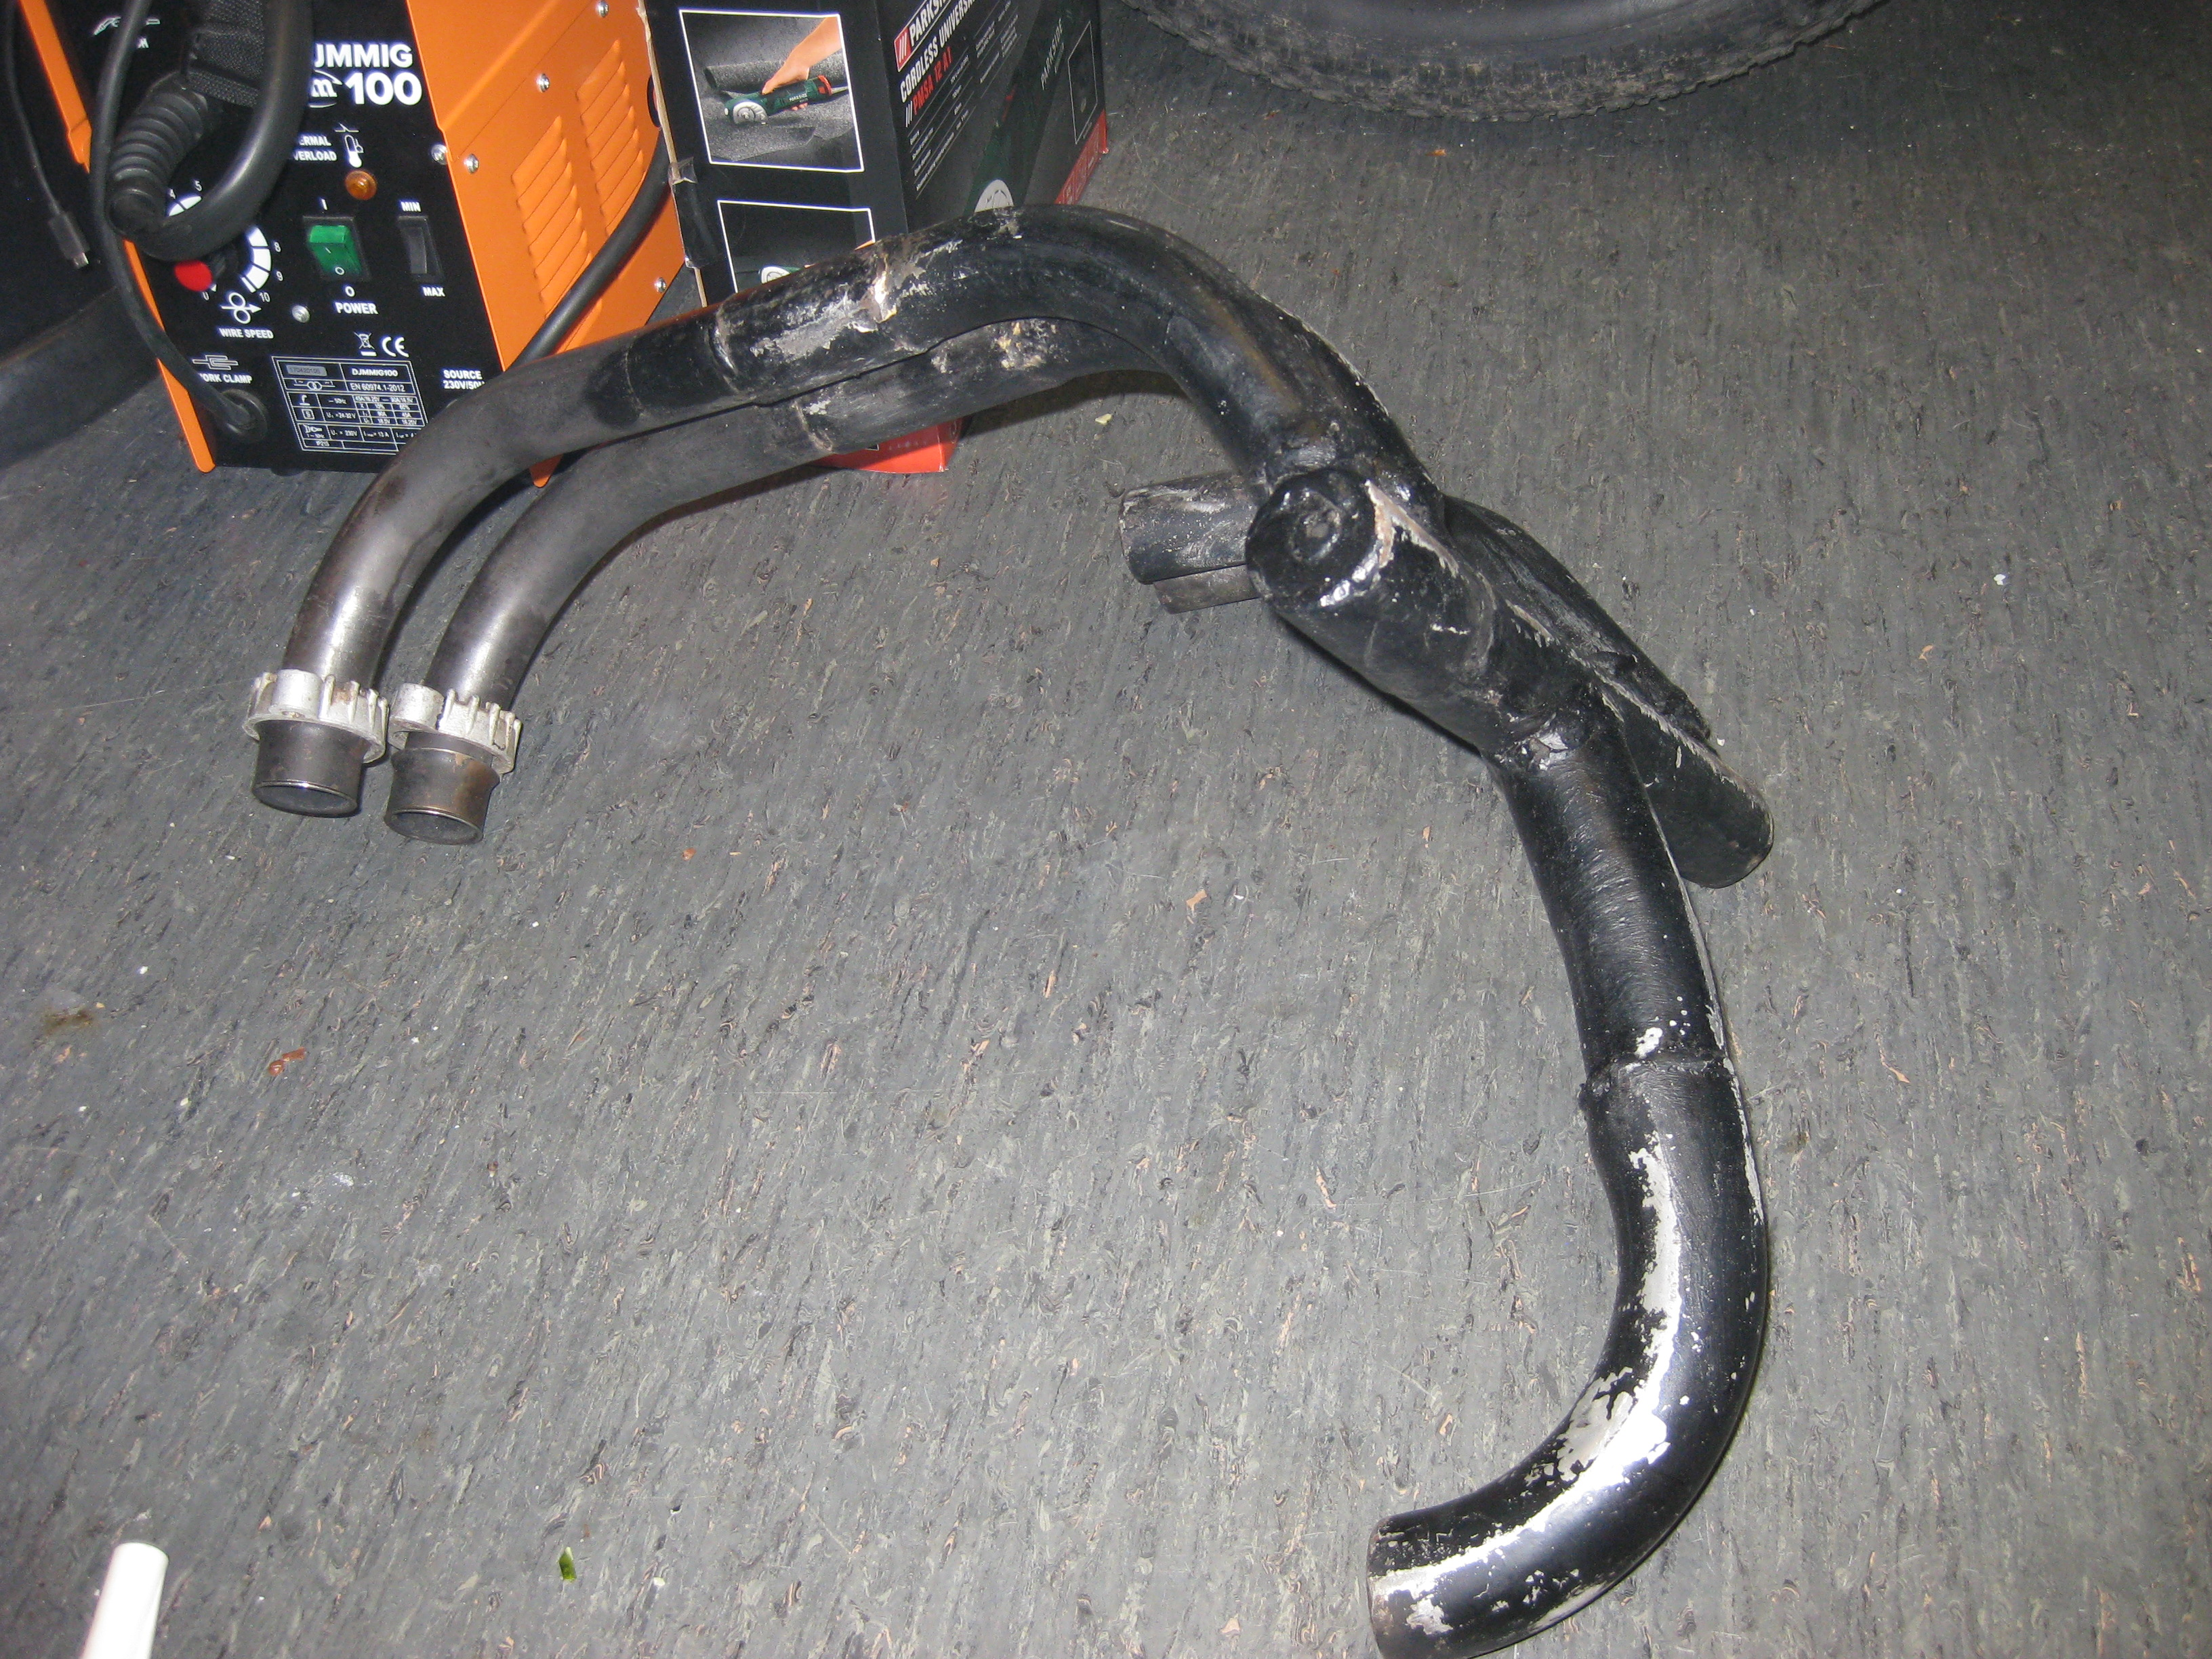 The original exhaust system that had been removed from the Kawasaki Gpz600r.